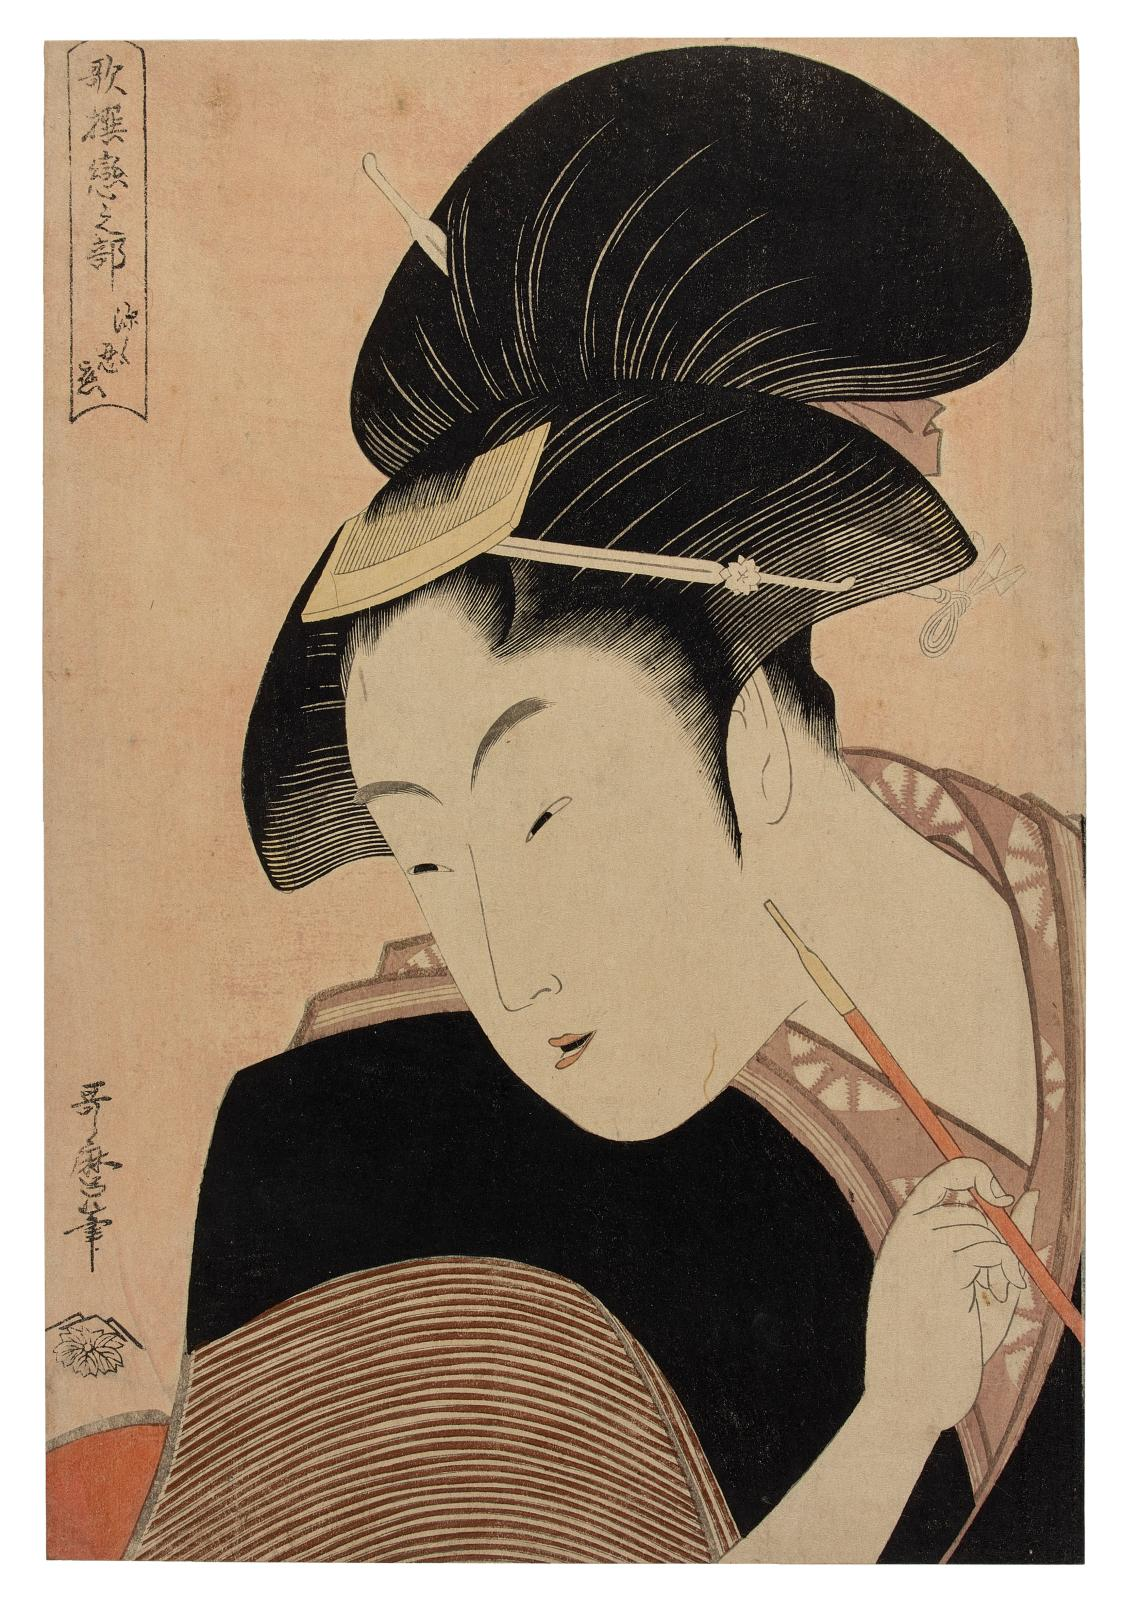 Kitagawa Utamaro (1753?-1806), Hidden Love (Fukaku shinobu koi) from the series Poetry Anthology: Love Section (Kasen koi no bu), print on micaceous b